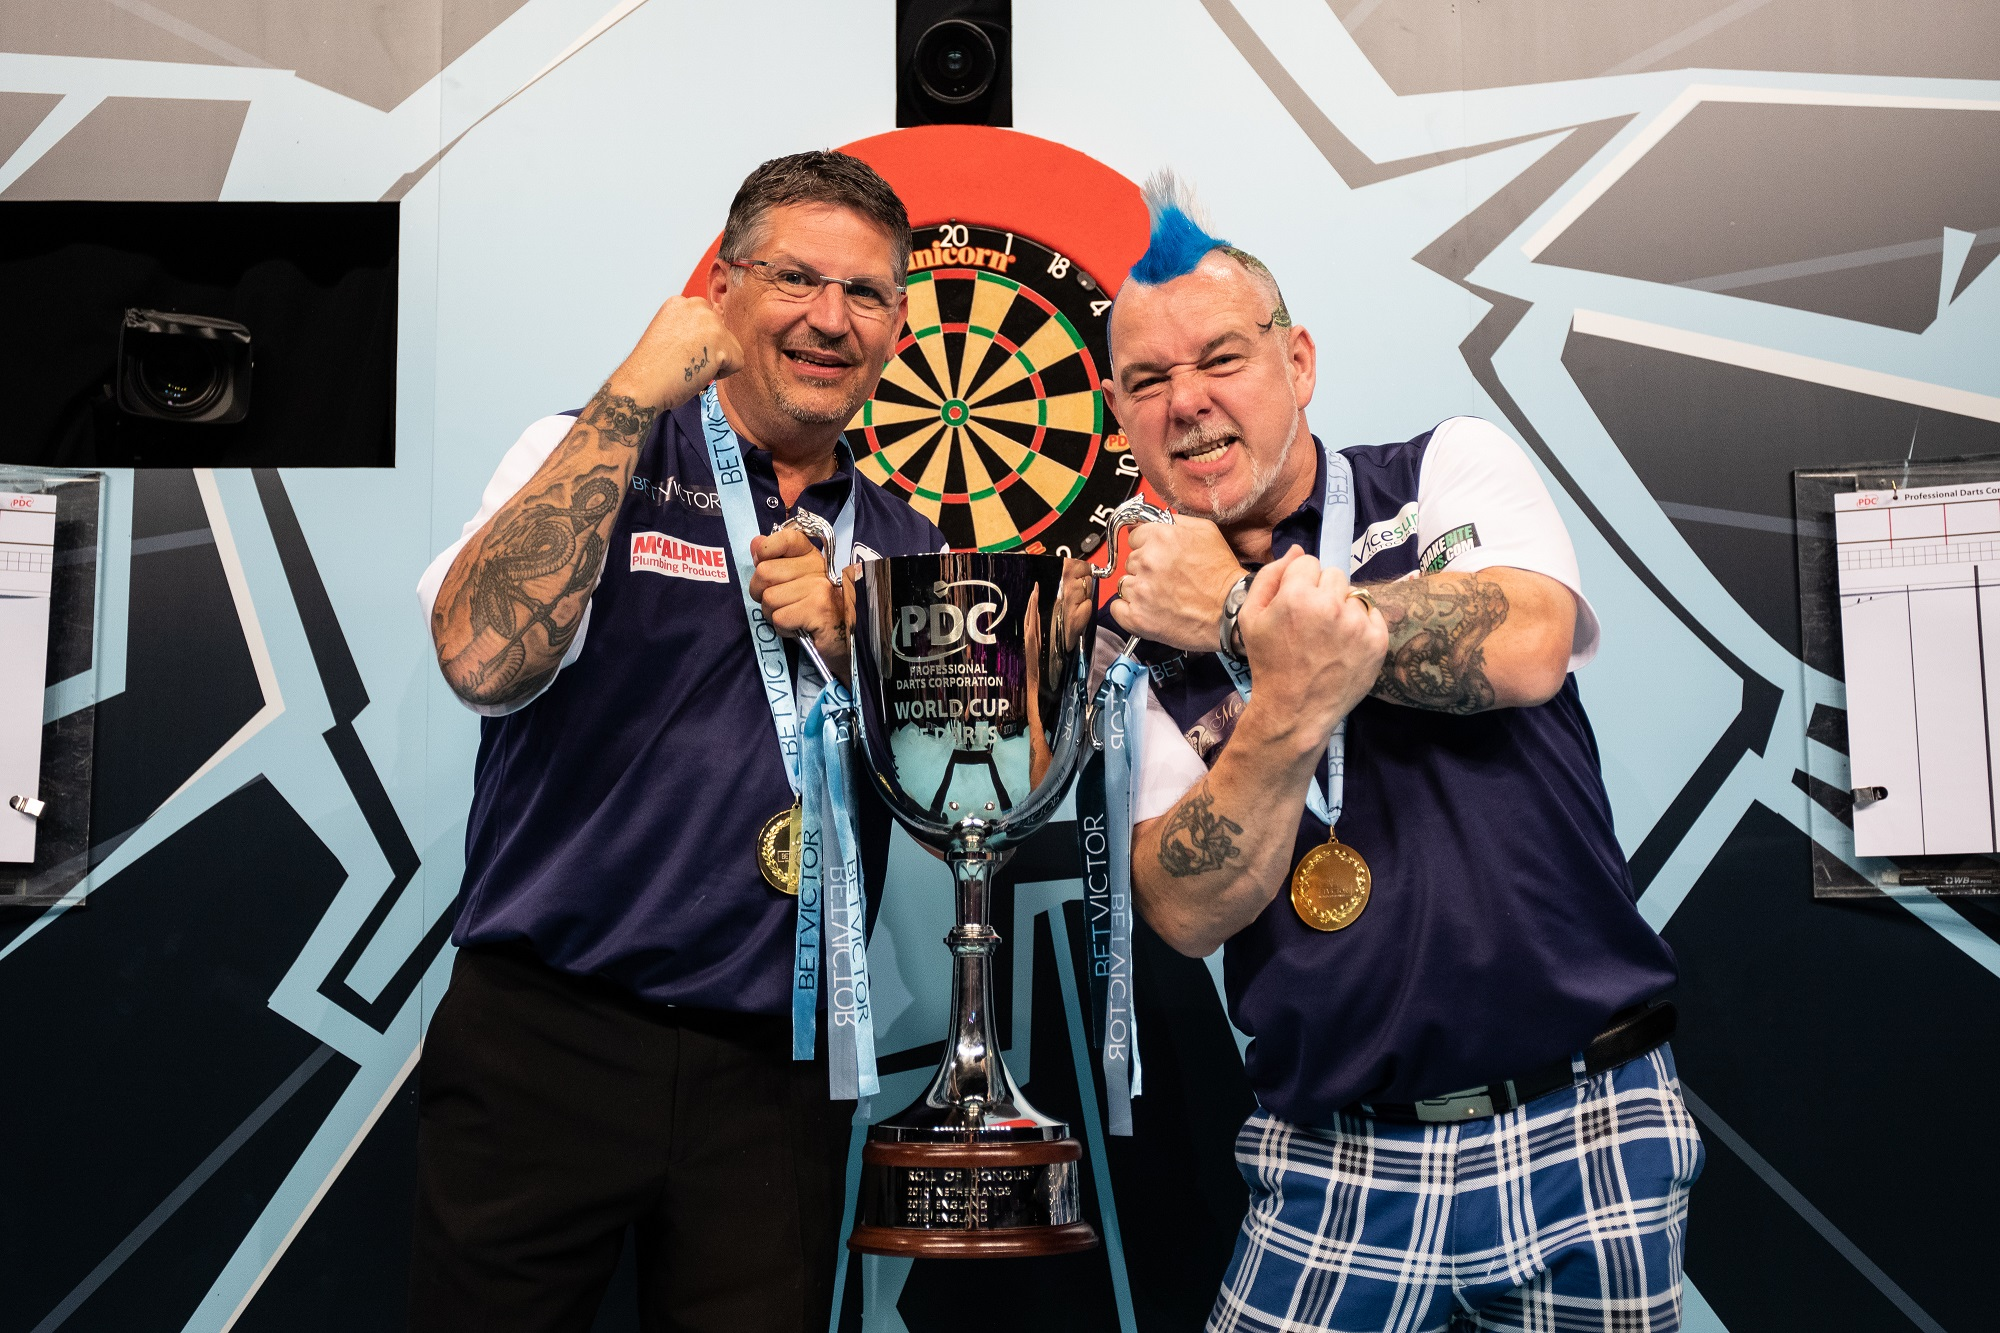 World Cup glory for Gary and Scotland